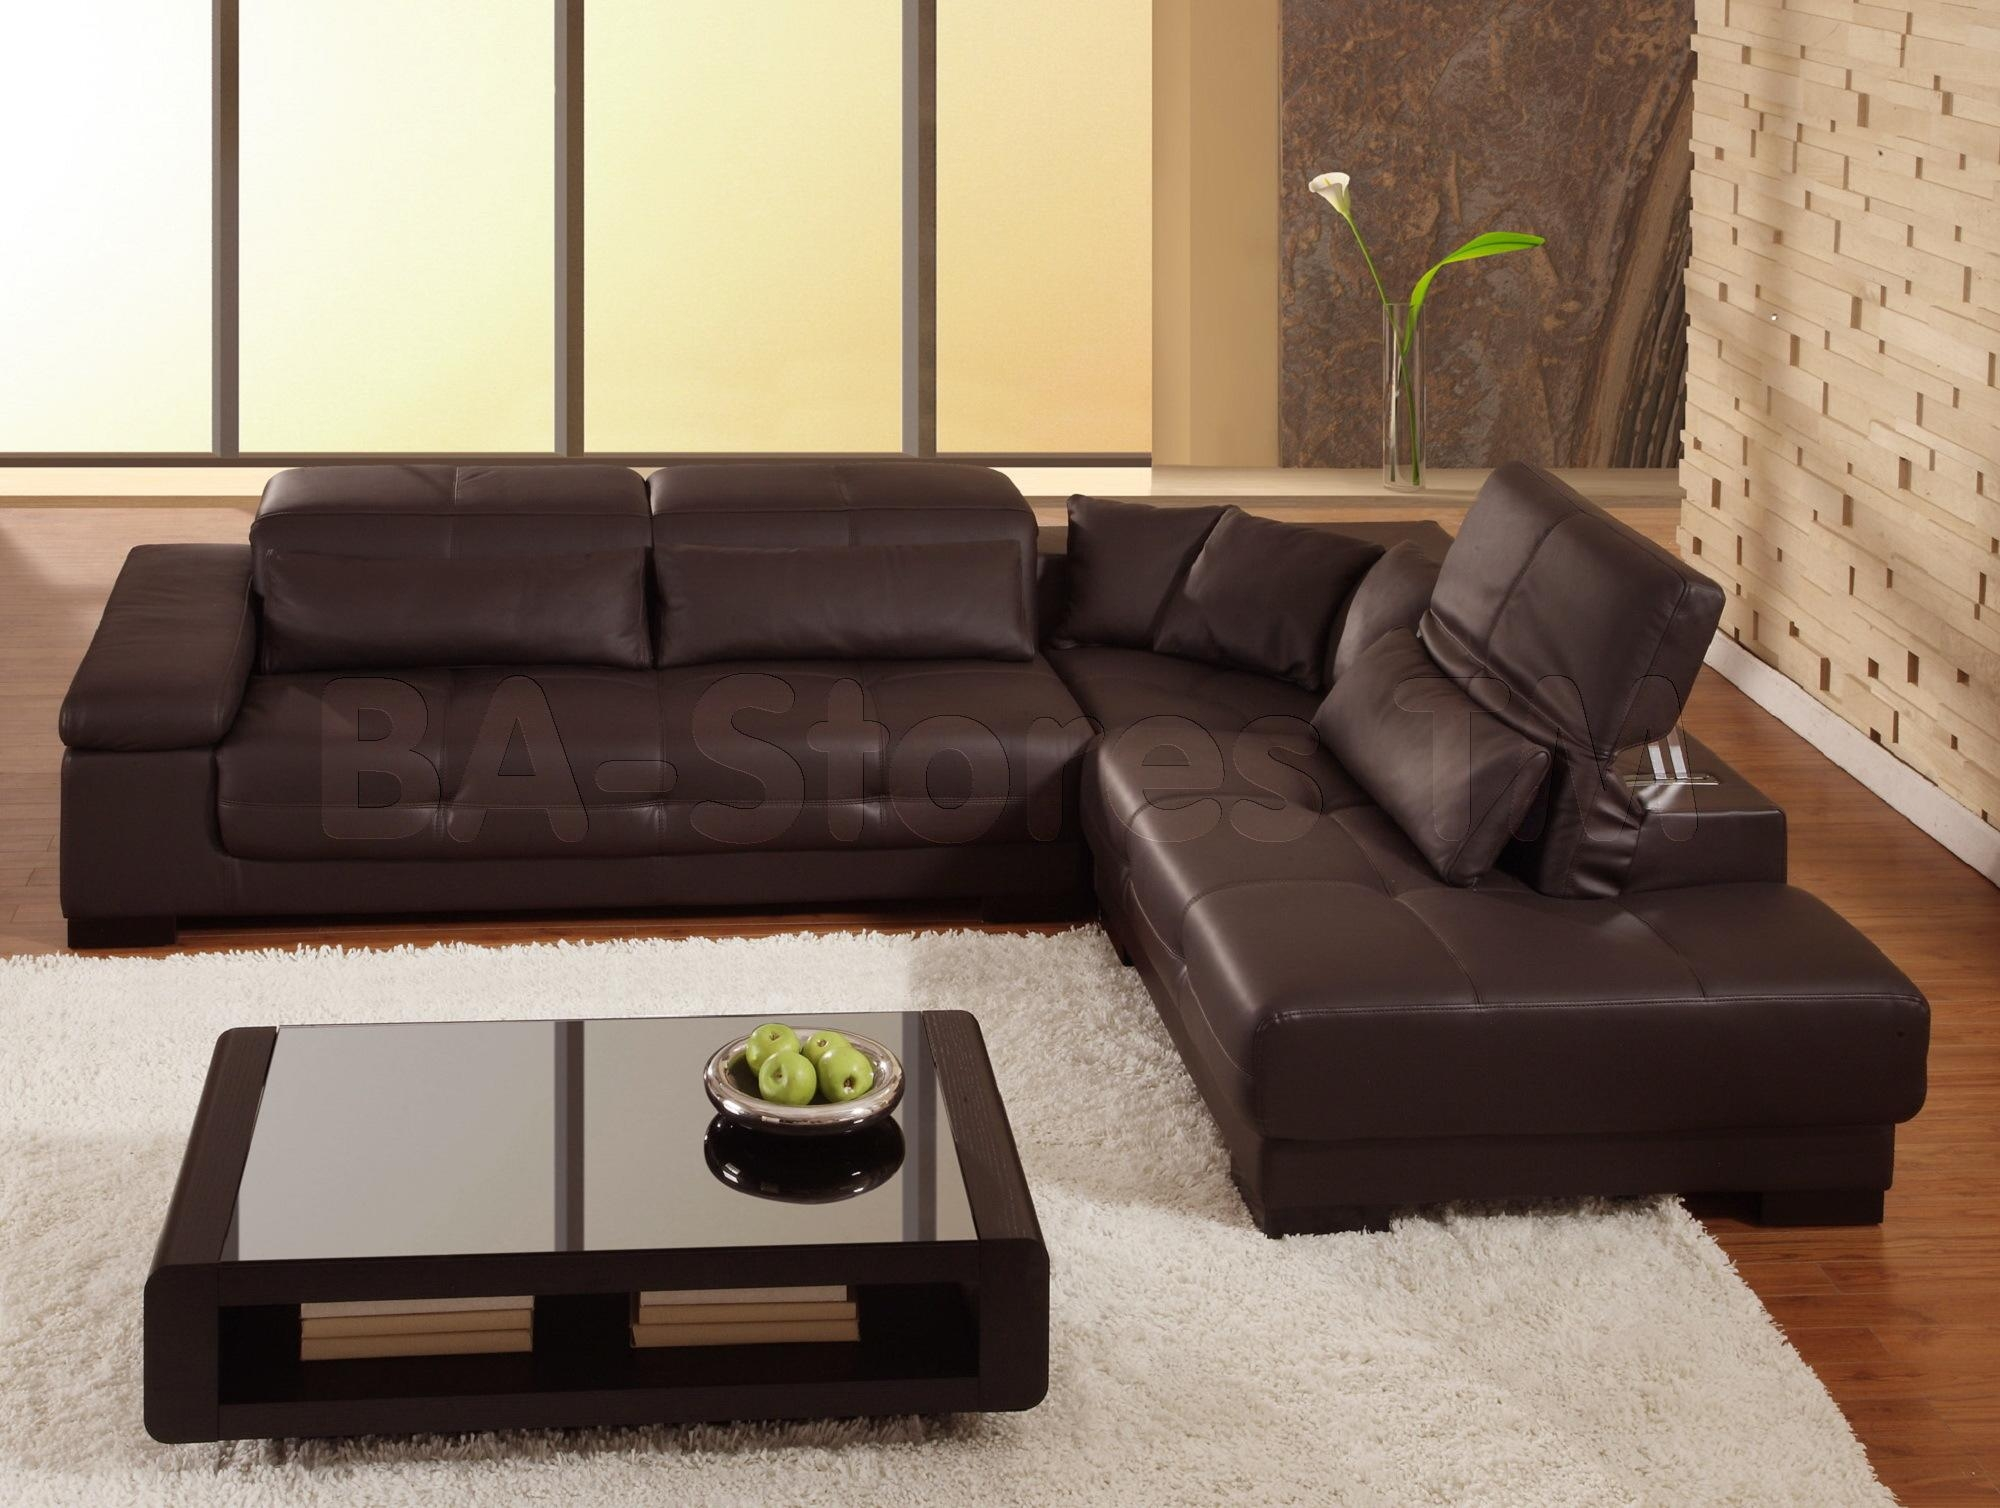 Velvet Sofas Sectionals – Leather Sectional Sofa Intended For Velvet Sofas Sectionals (Image 20 of 20)